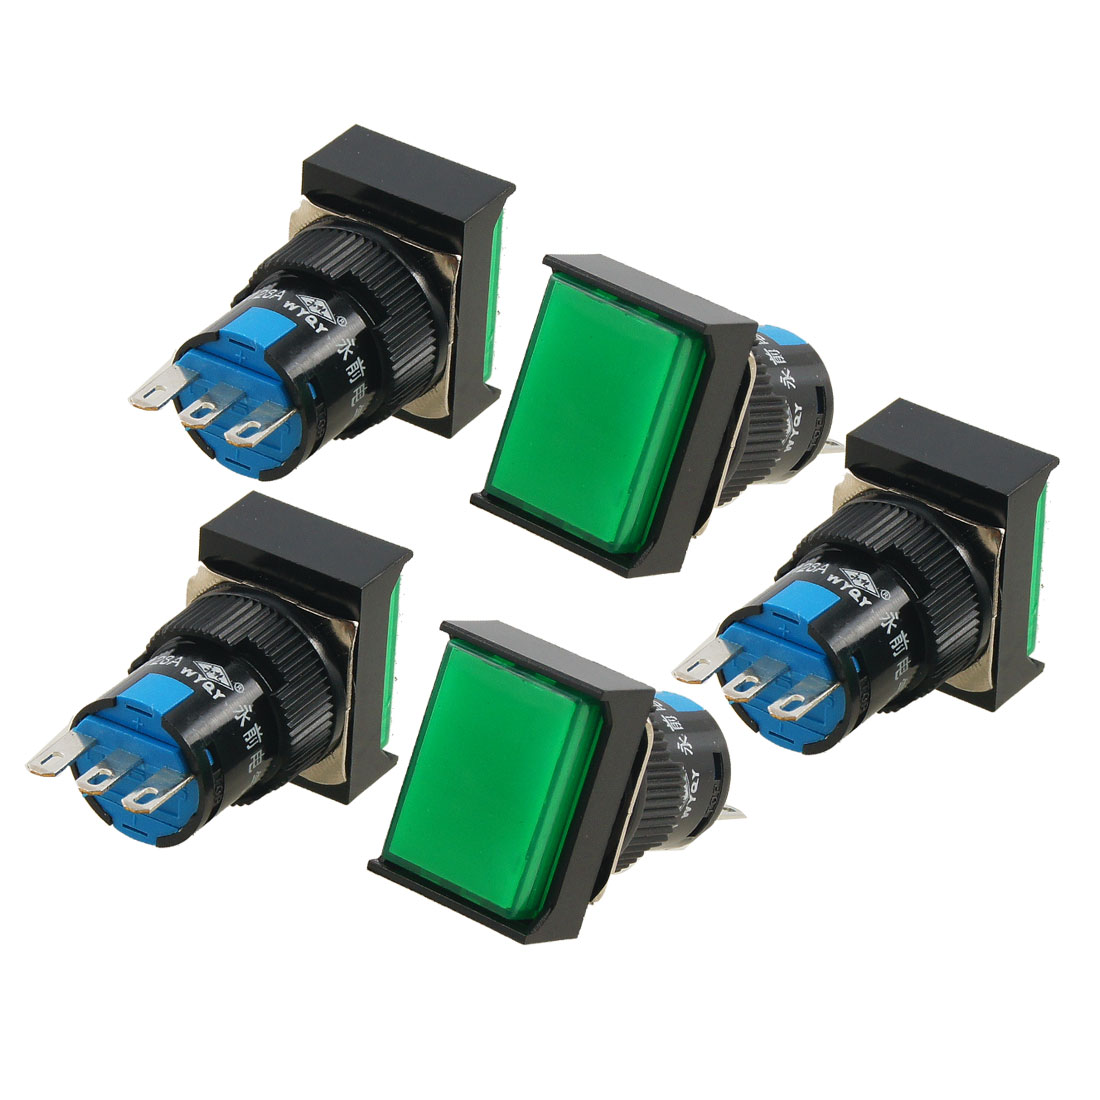 5 Pcs Green SPDT Rectangle Momentary Push Button Switch AC 250V 5A